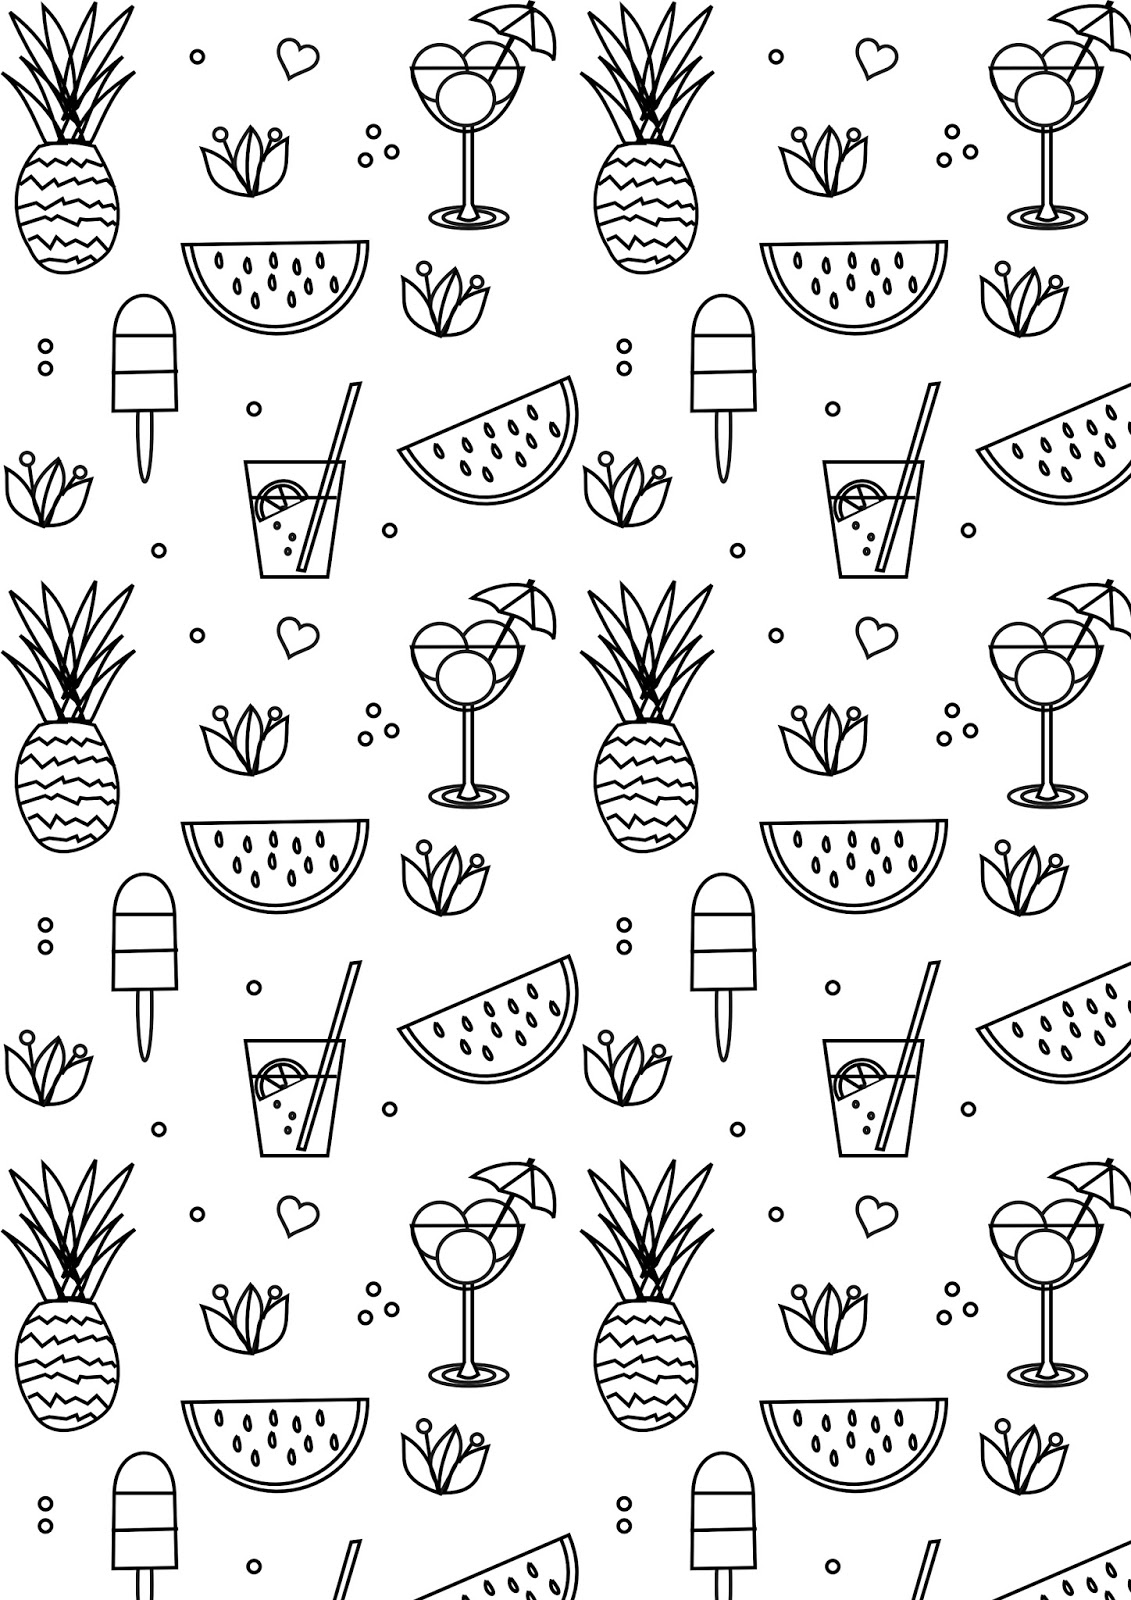 coloring picture to print free printable summer coloring page ausdruckbare print coloring picture to